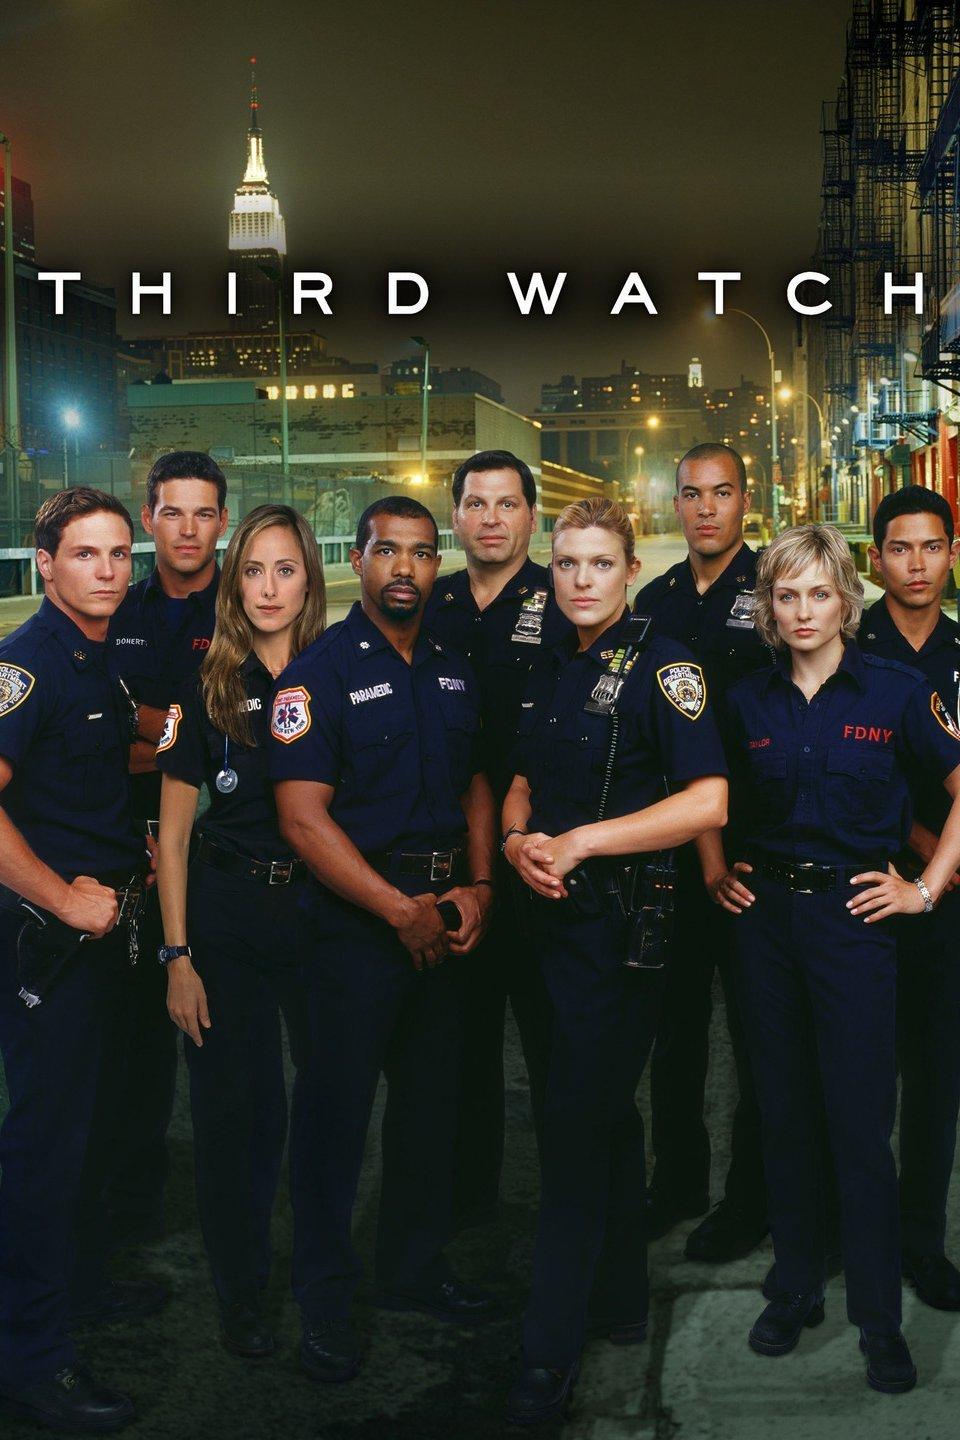 Third Watch  Episodic Television Producer: John Wells